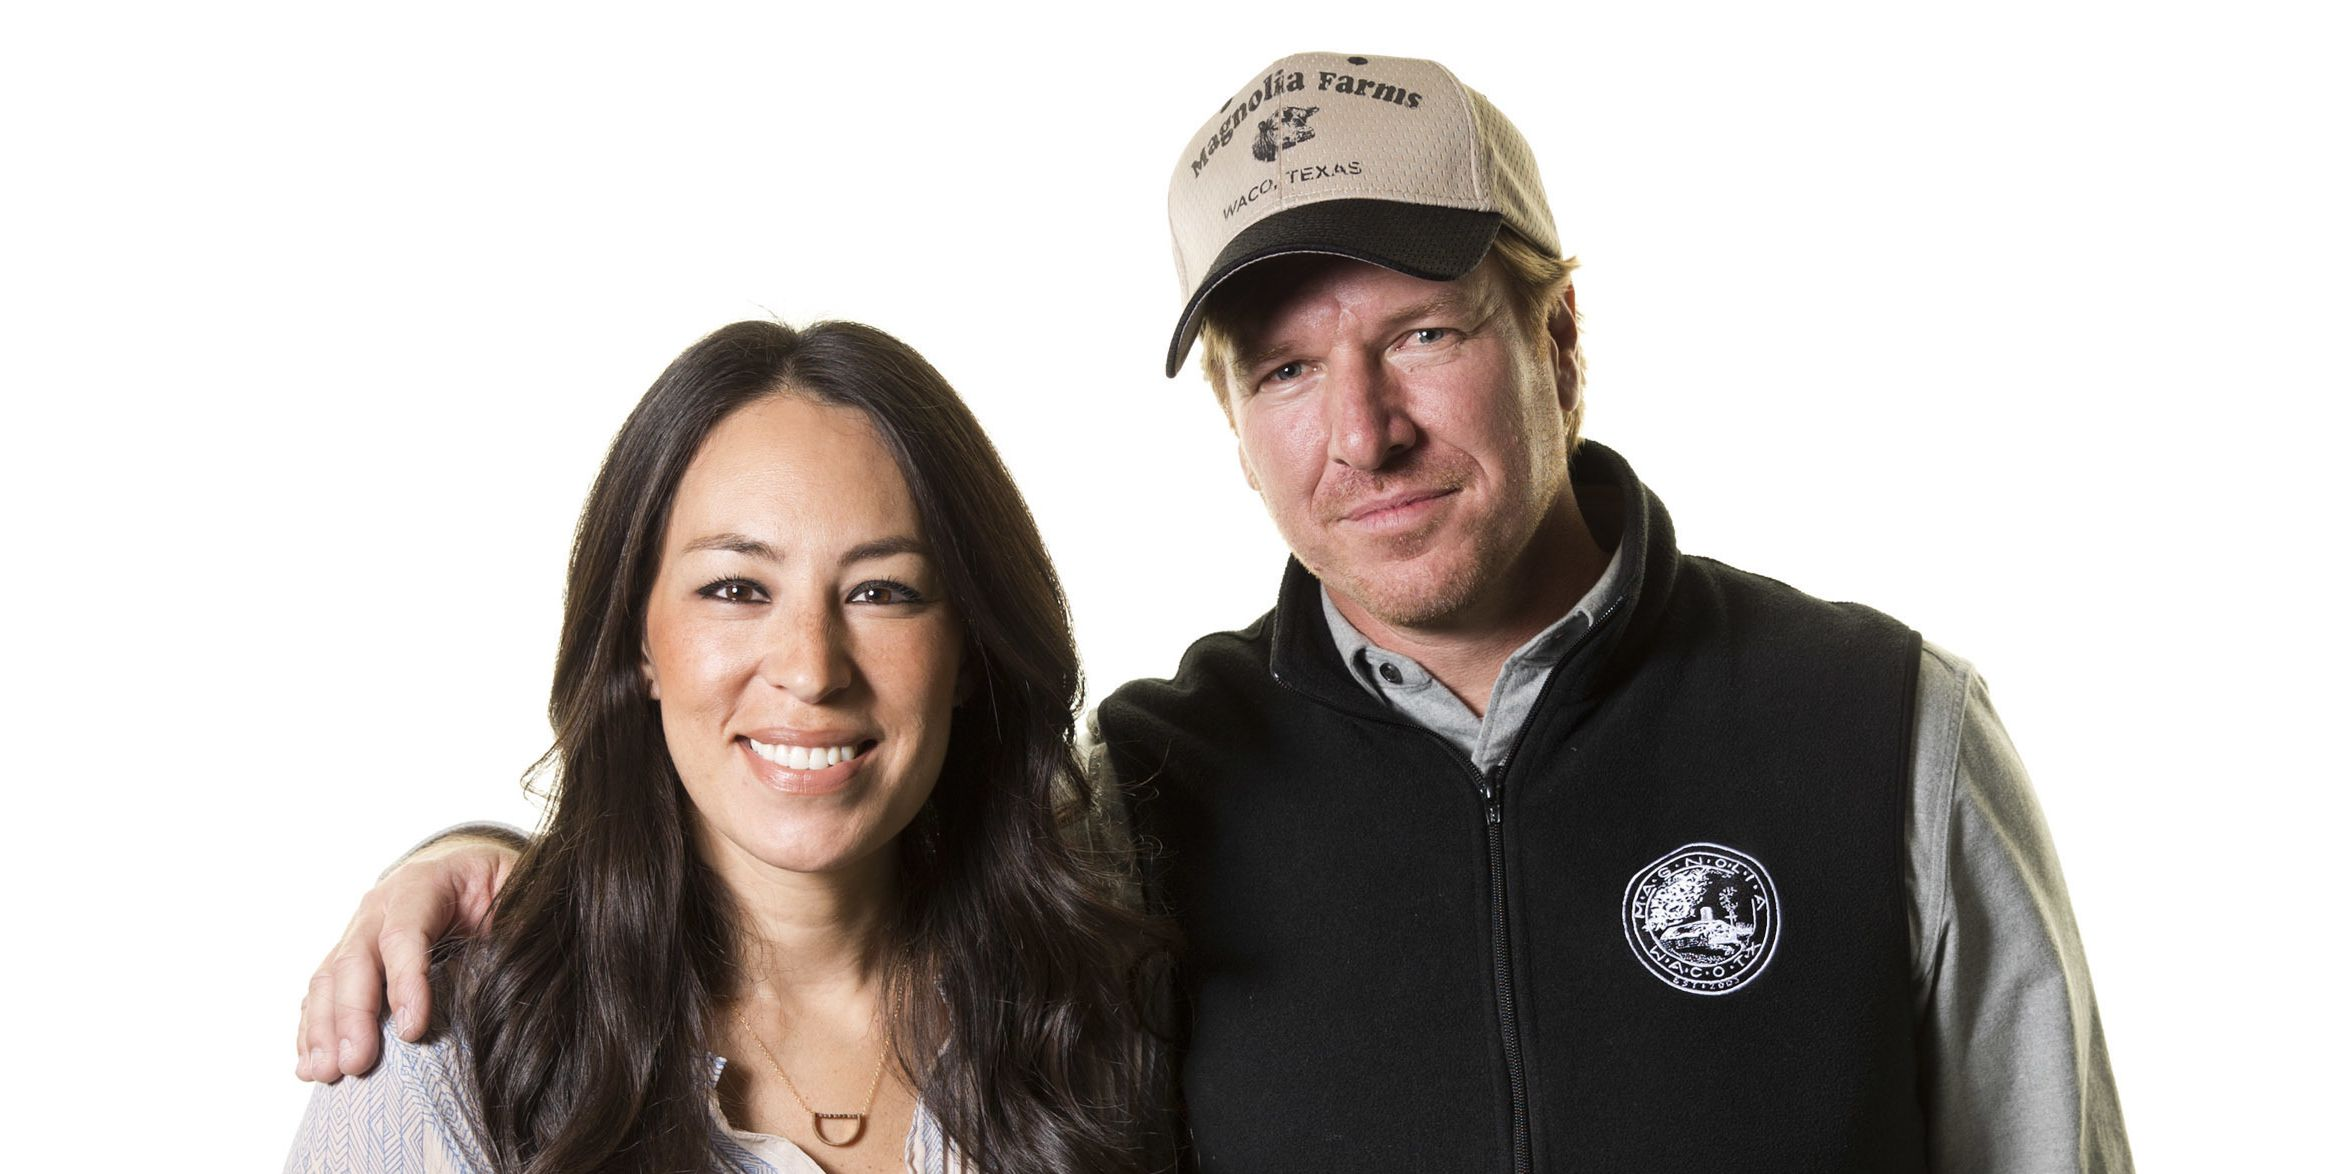 Chip and Joanna Gaines' Magnolia network to debut on Oct. 4